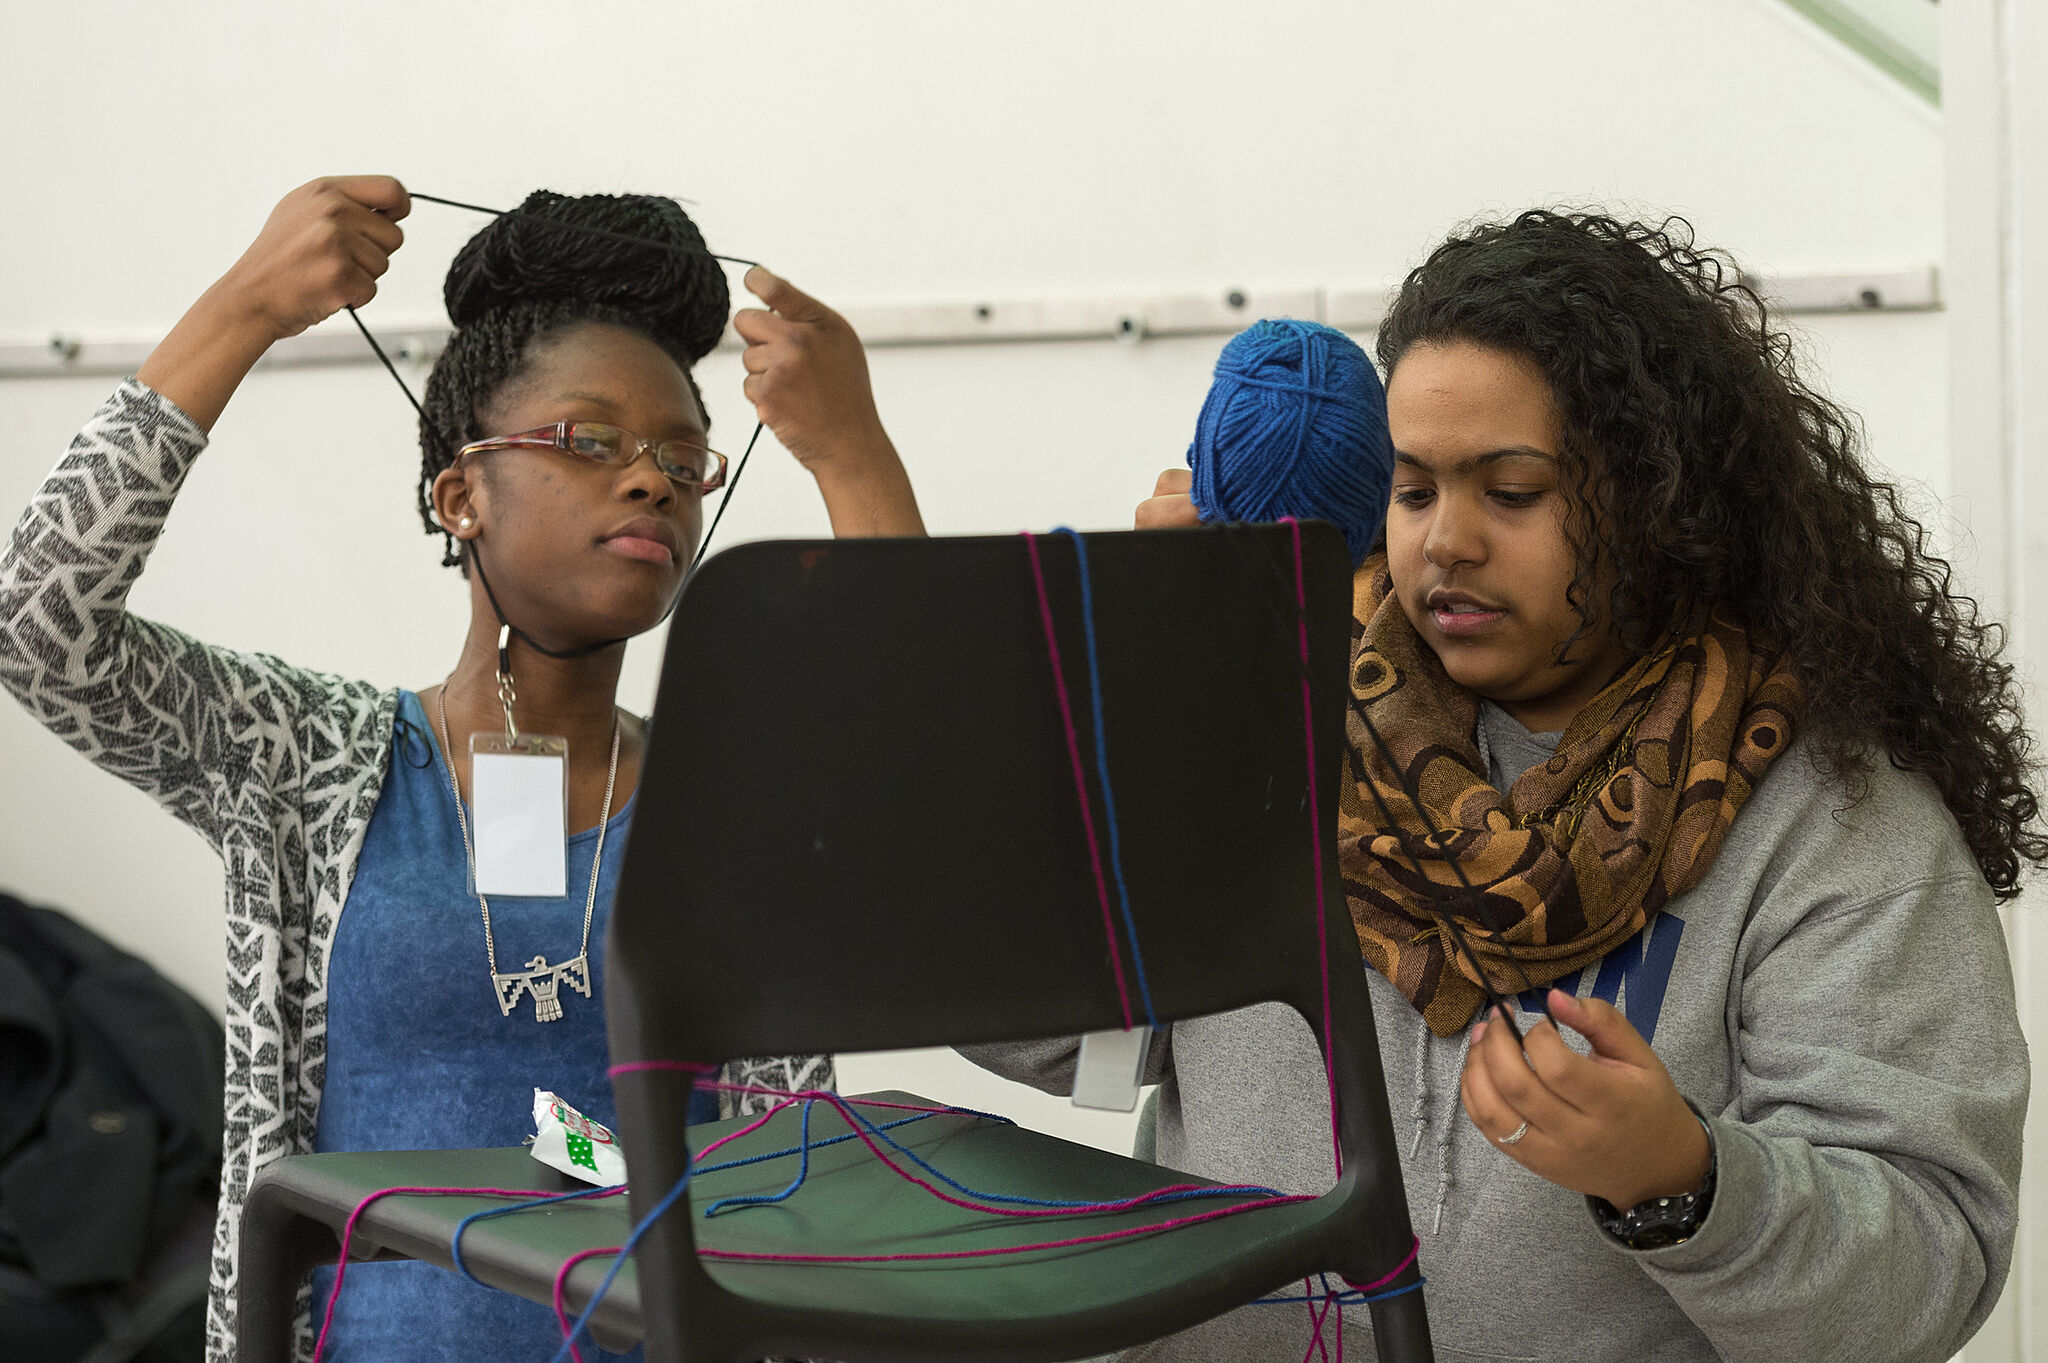 Two students use yarn and a chair to work on a project.